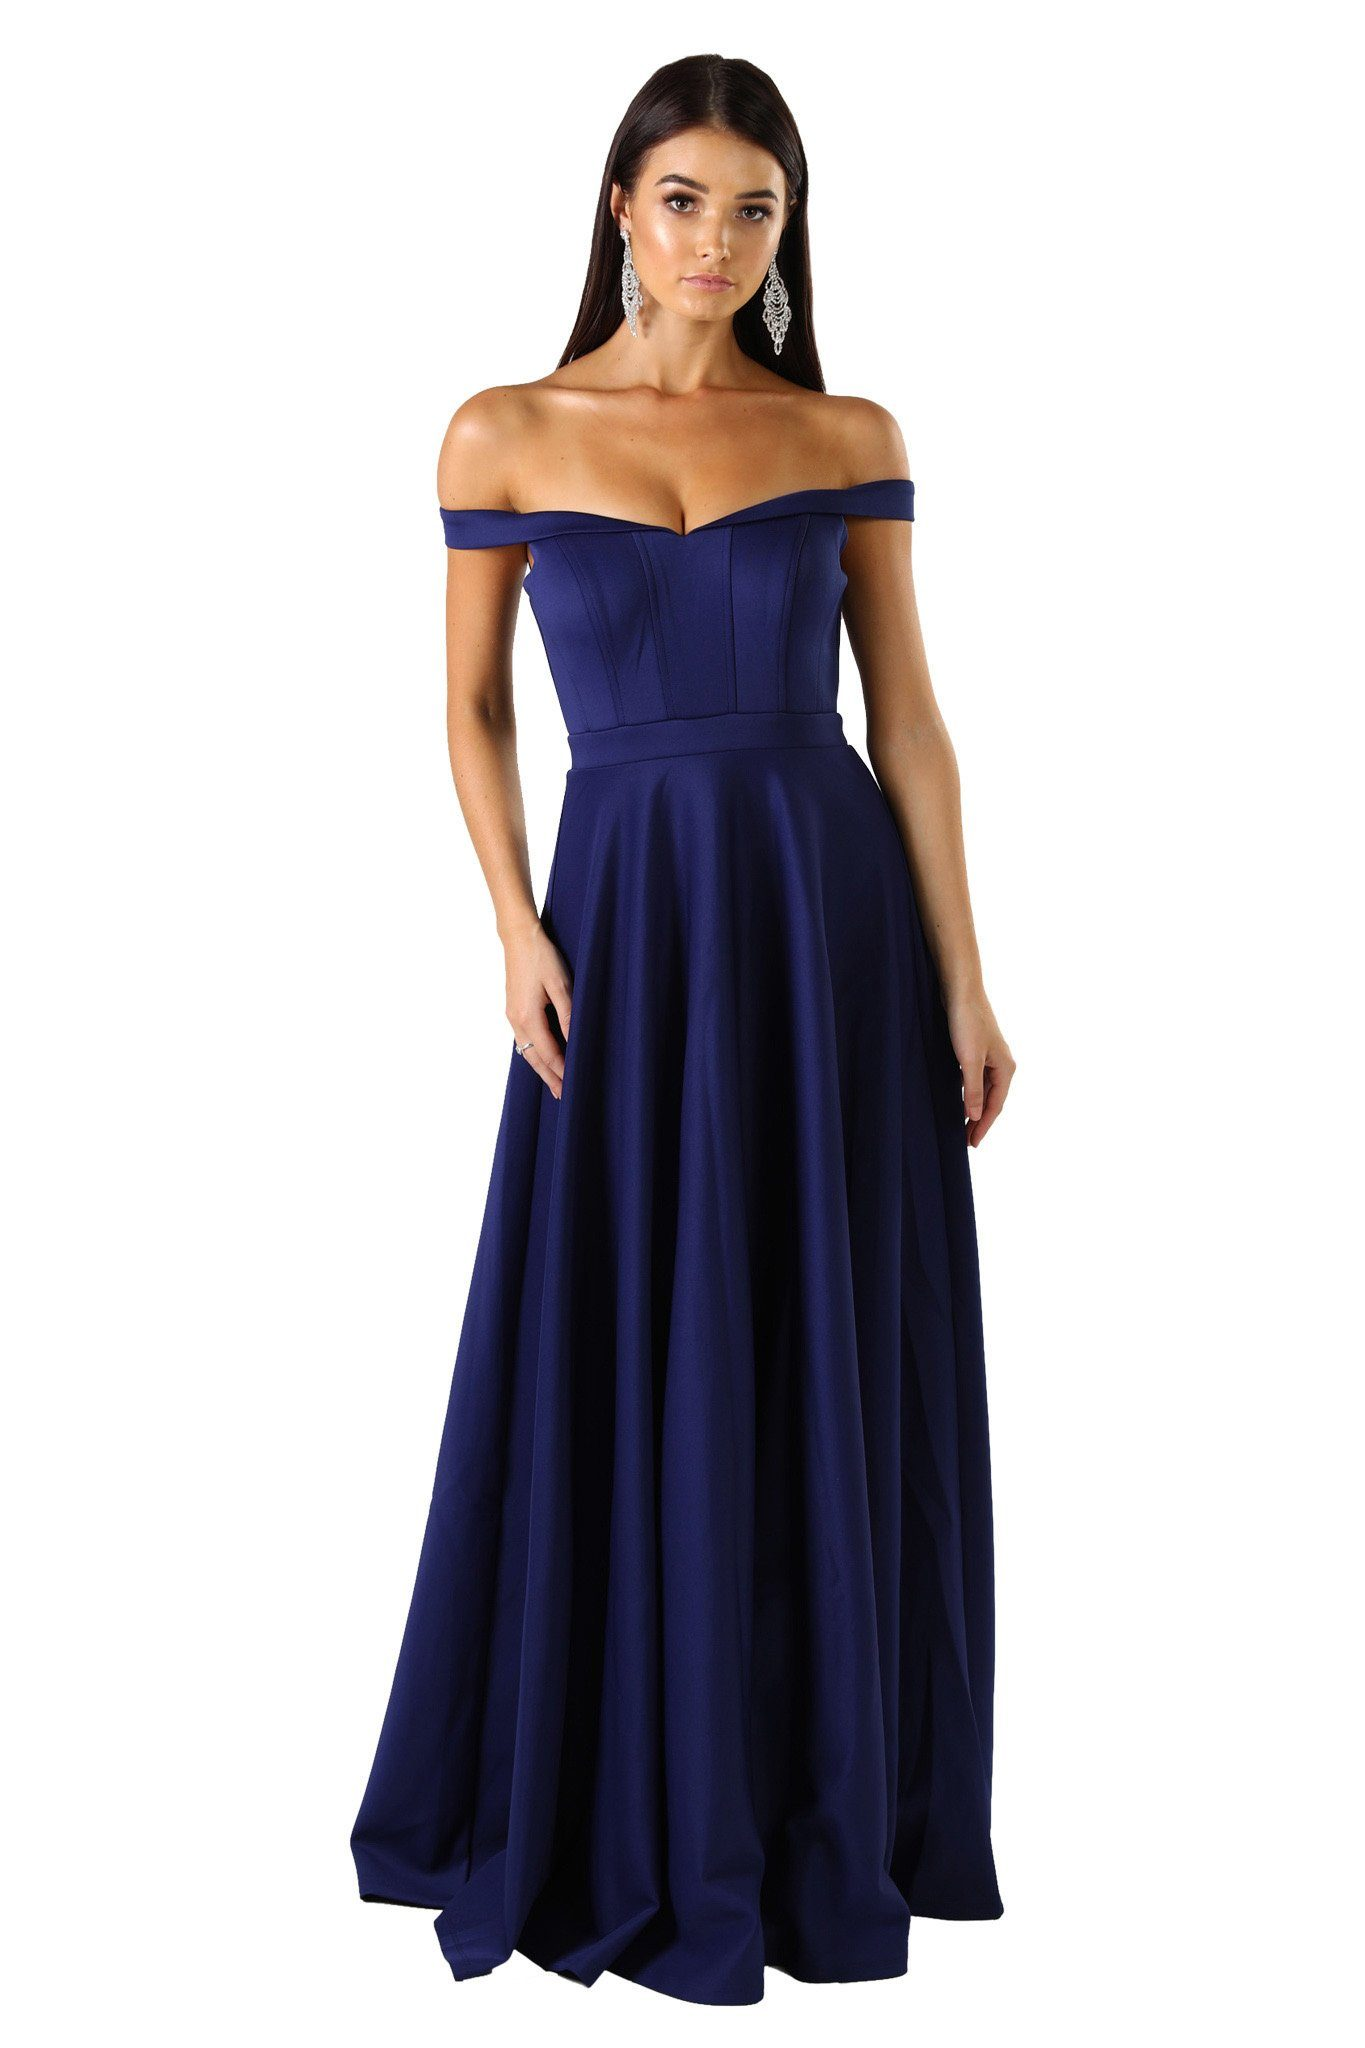 Off shoulder ponti floor length A line skirt gown in navy/dark blue color